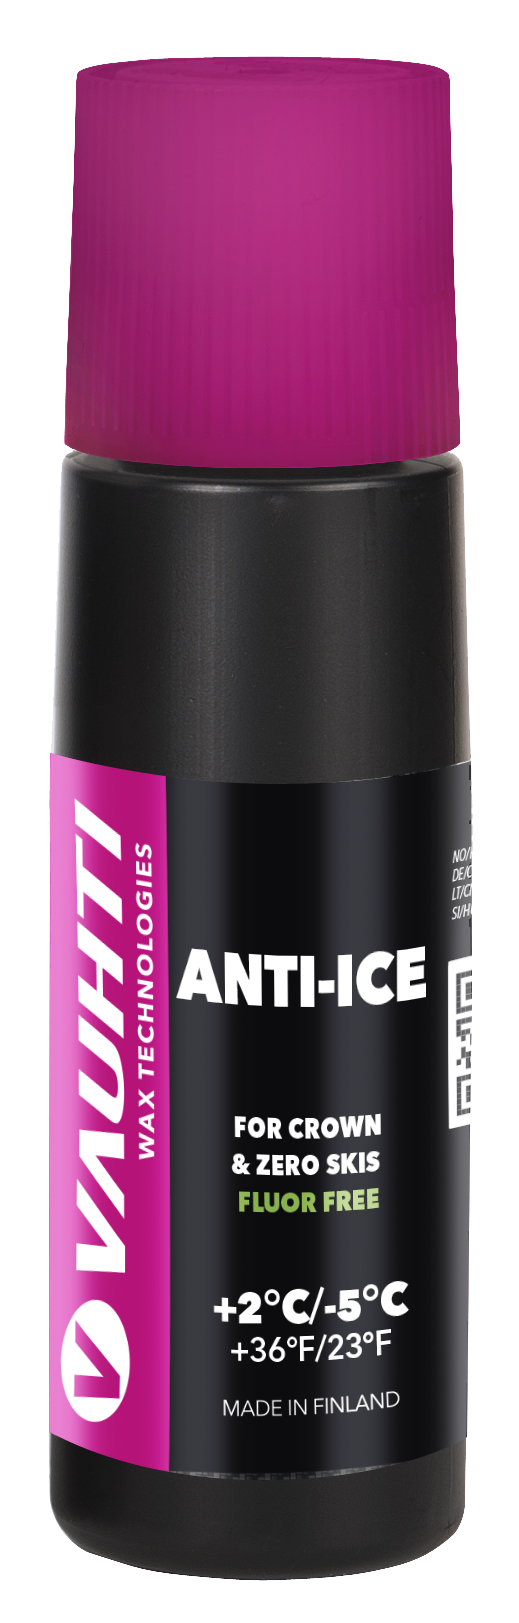 Anti-ice agent for crown & zero skis. Use on new snow close to zero degrees to prevent icing.